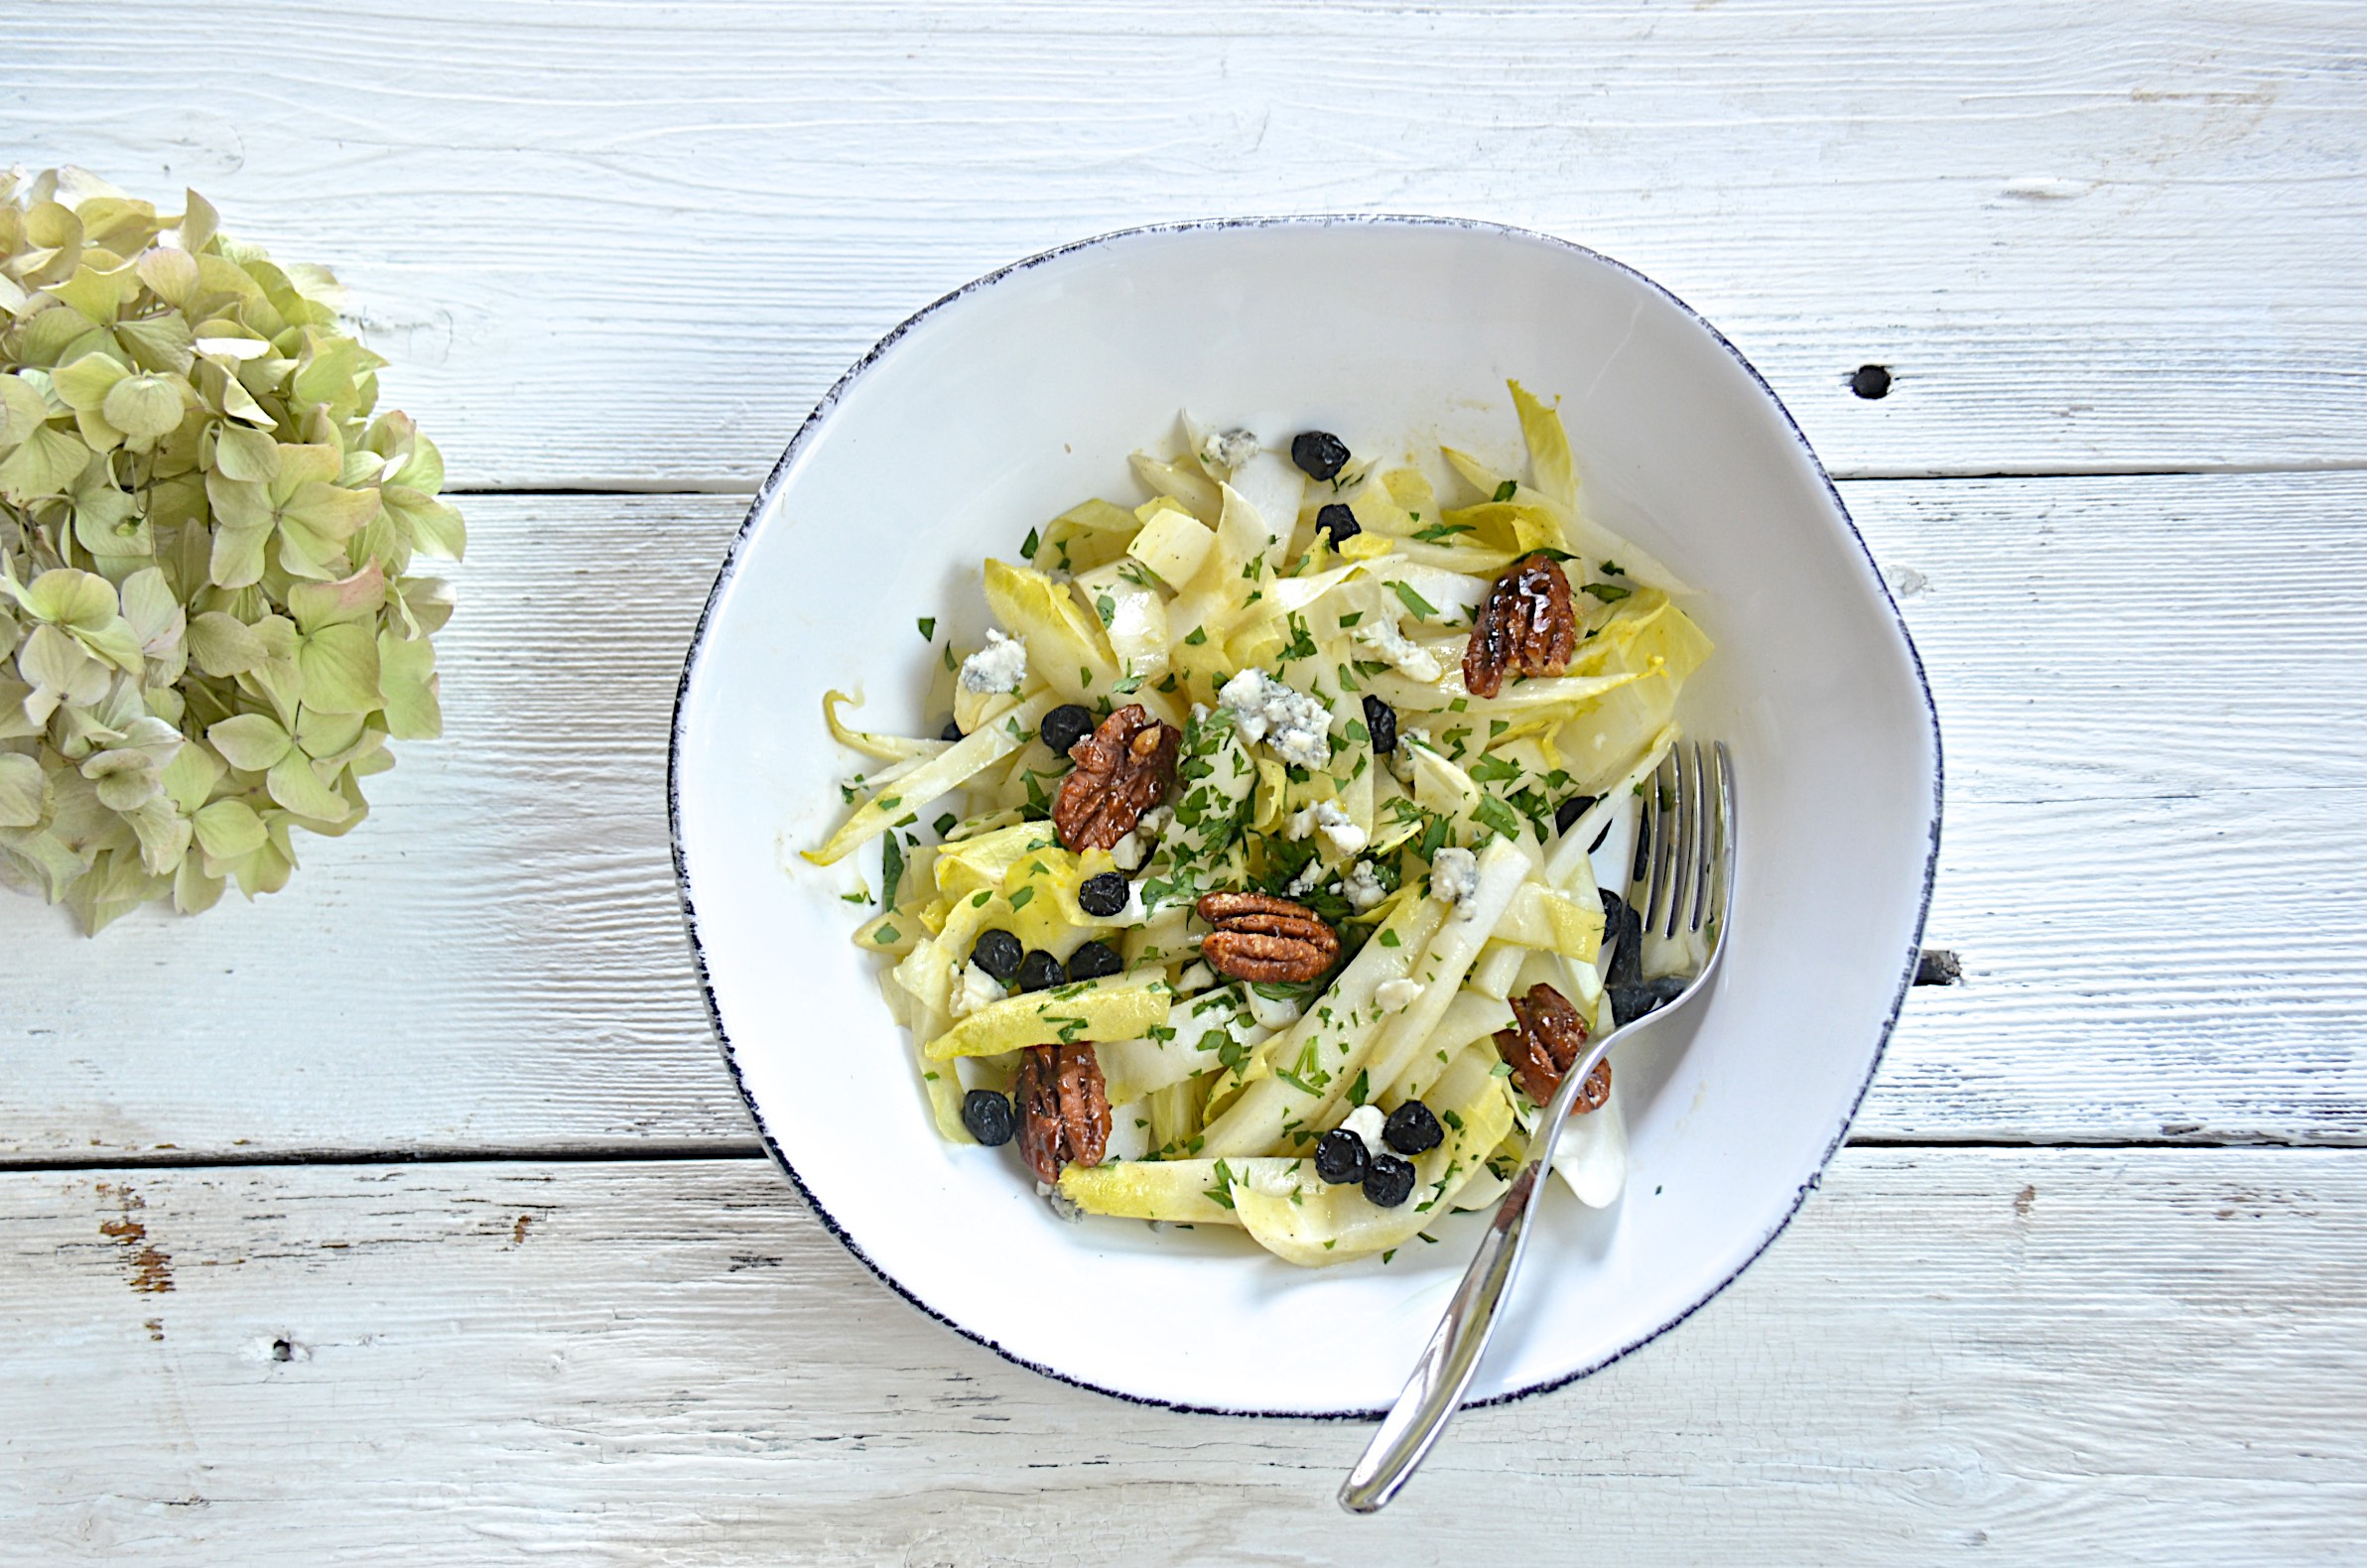 Endive salad with candied nuts and creamy vinaigrete